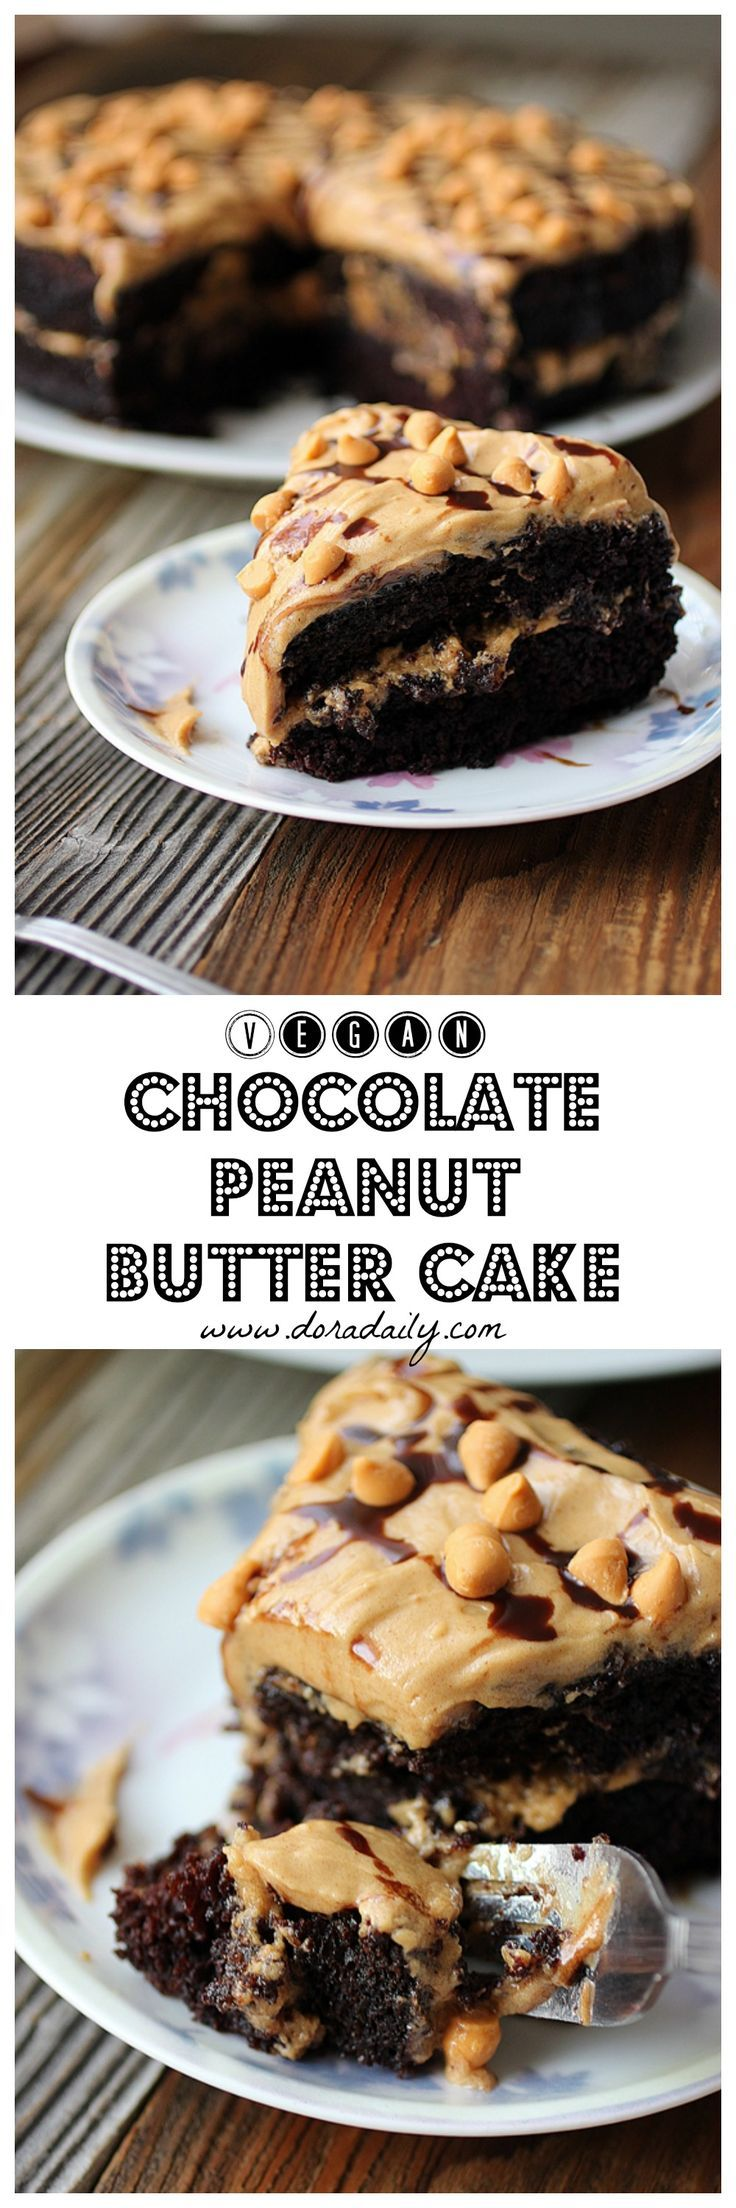 Vegan Chocolate peanut butter cake! Oh so decadent!